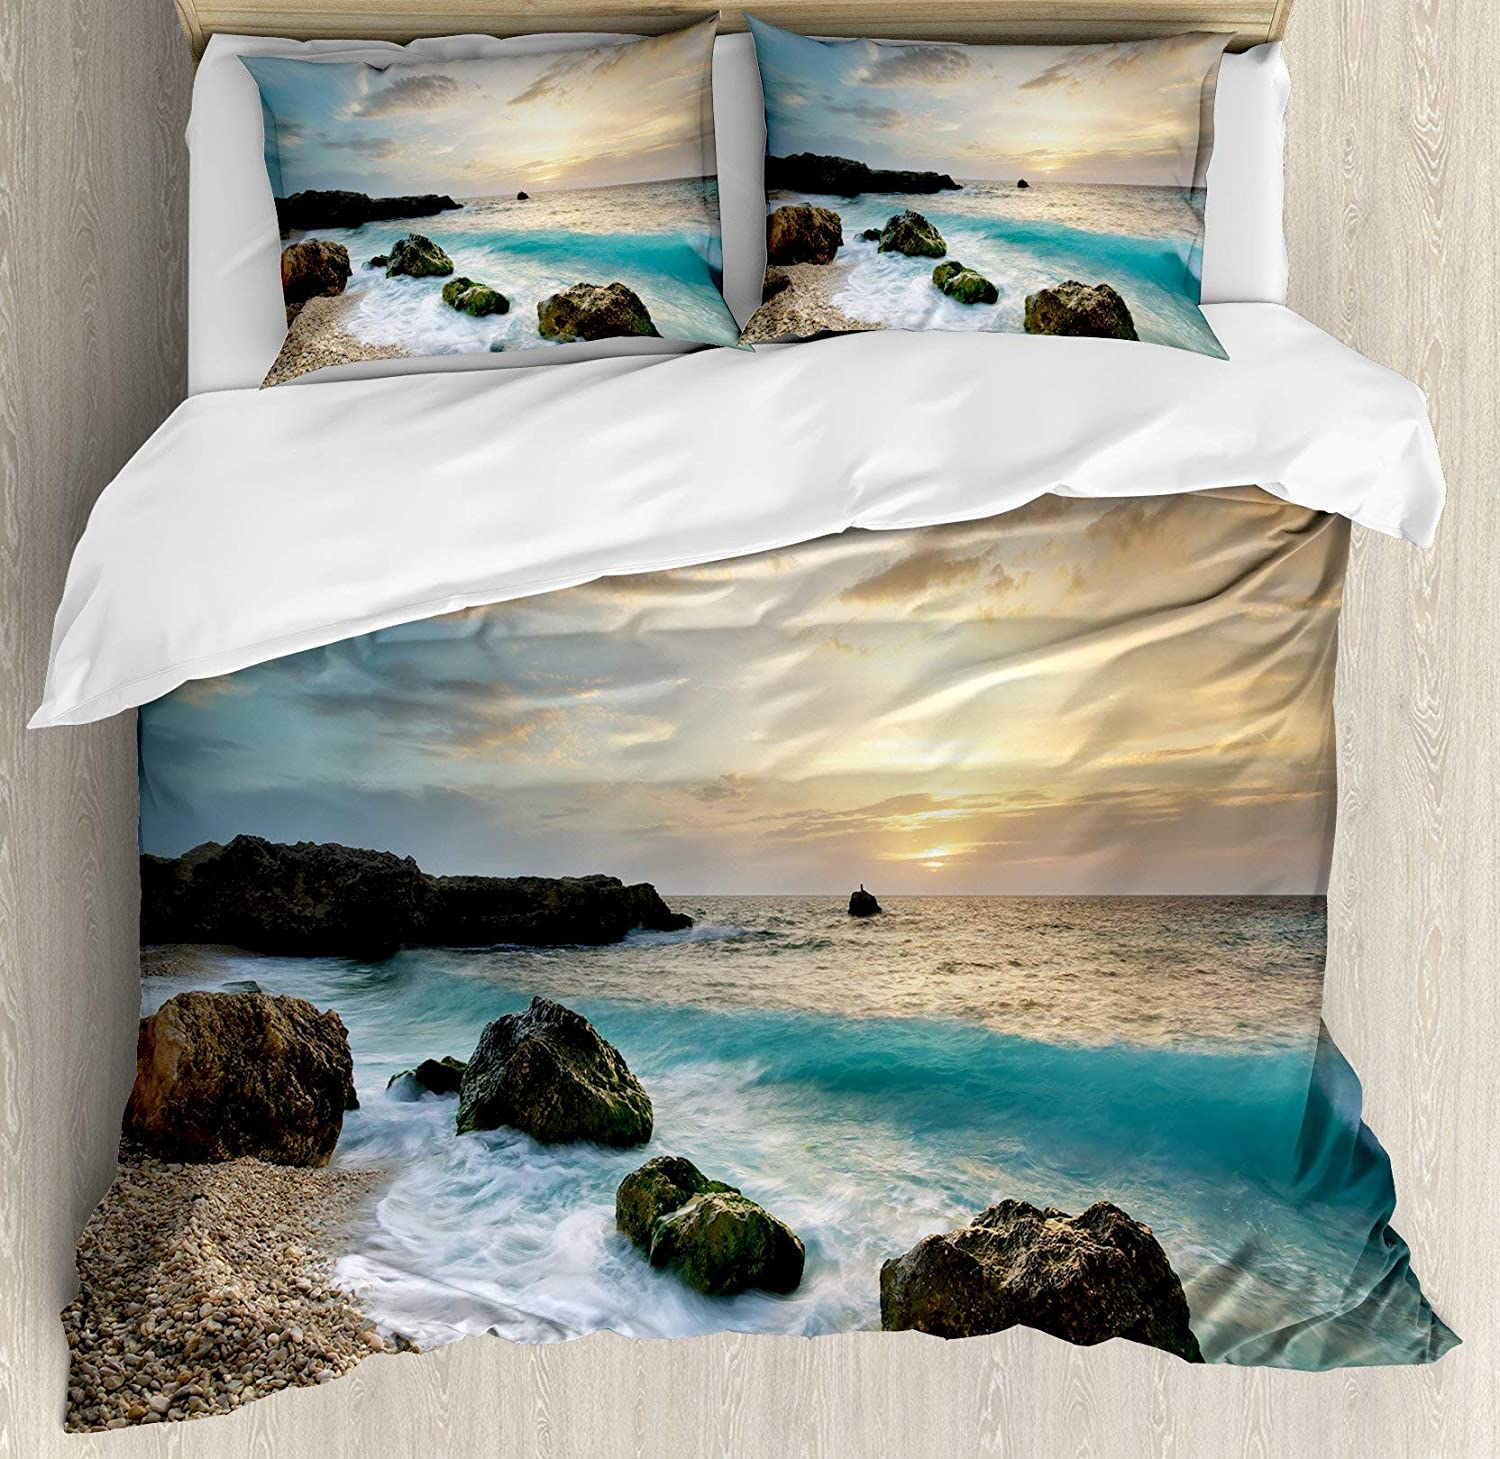 BULING Ocean 4pc Bedding Set Full Size, Seascape Composition of Nature Rocks Waves Cloudy Sky Rising Sun Beach Photo Floral Lightweight Microfiber Duvet Cover Set, Brown bluee Yellow